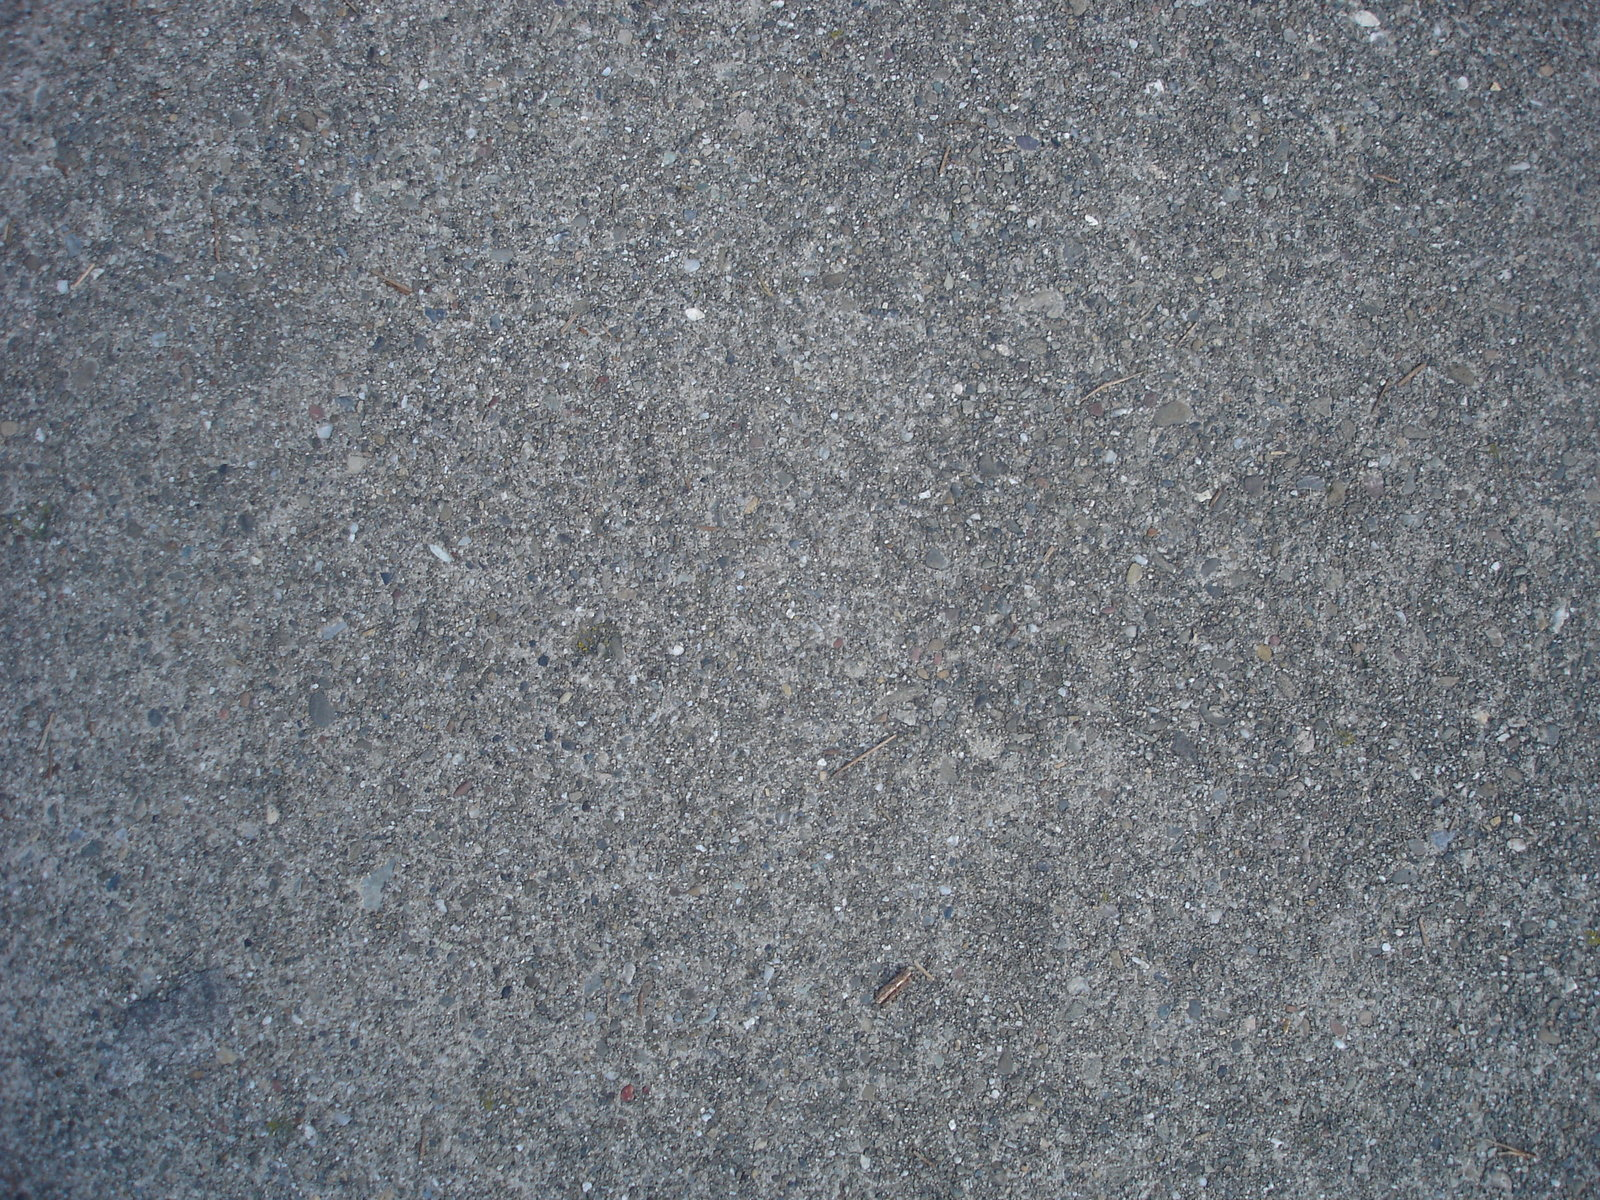 Asphalt - 04 photo